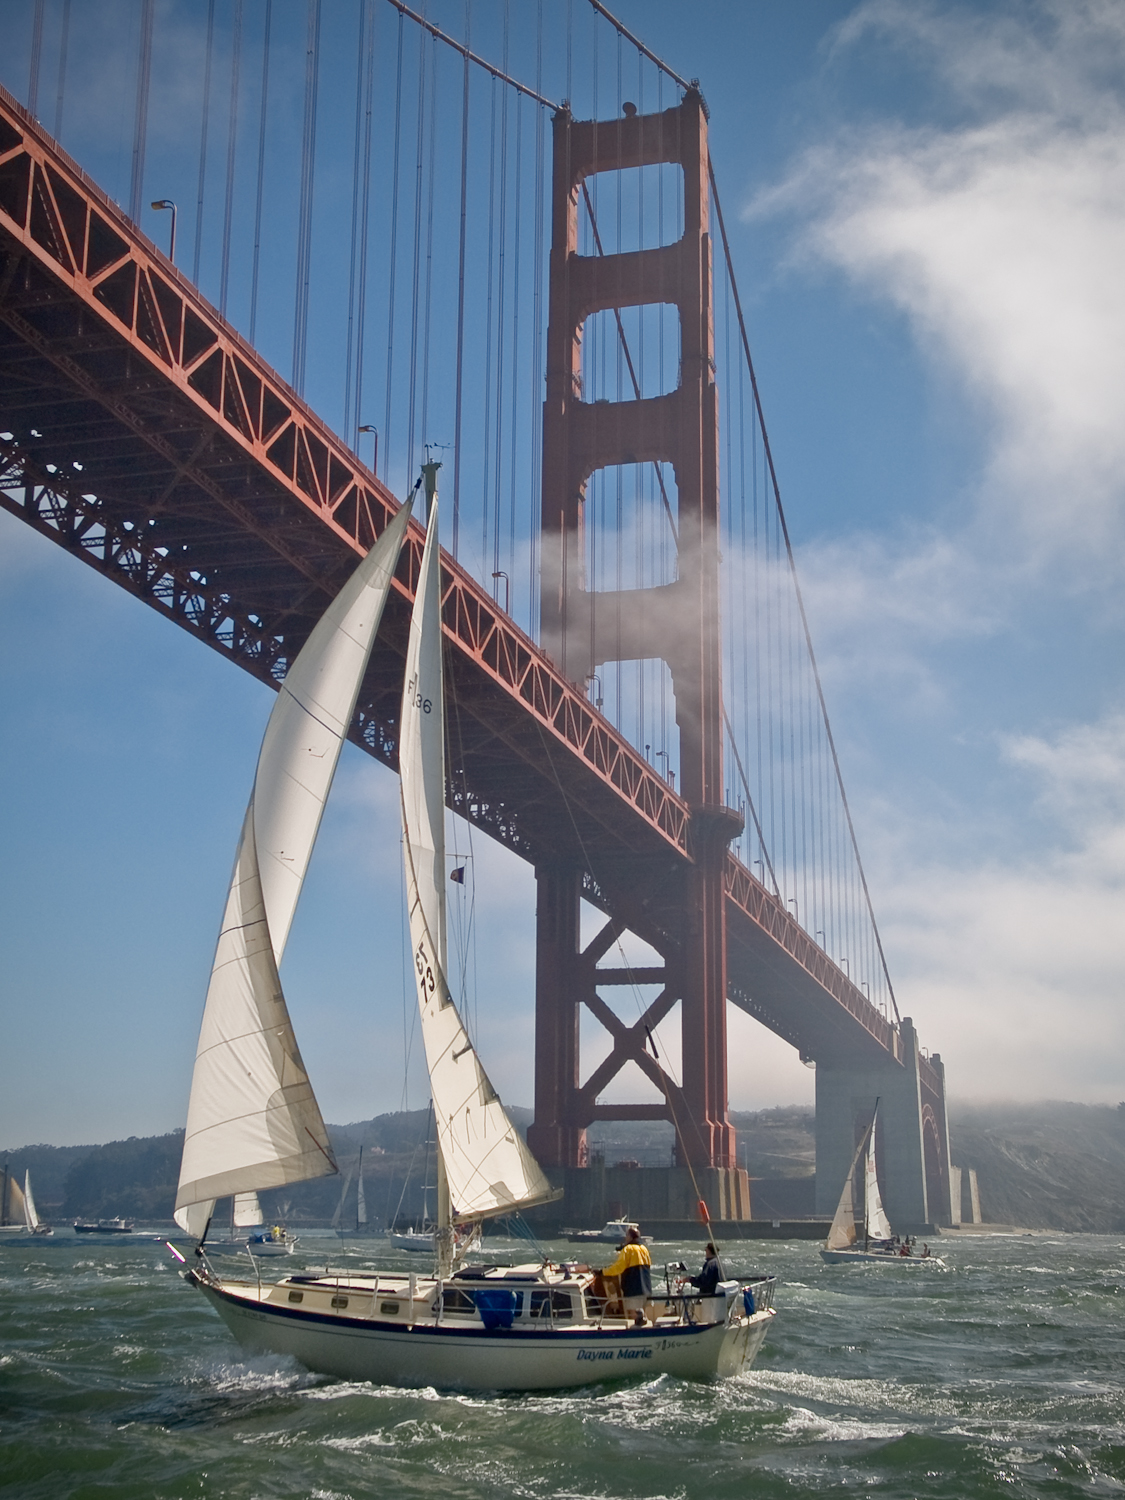 Entering the bay through the Golden Gate.